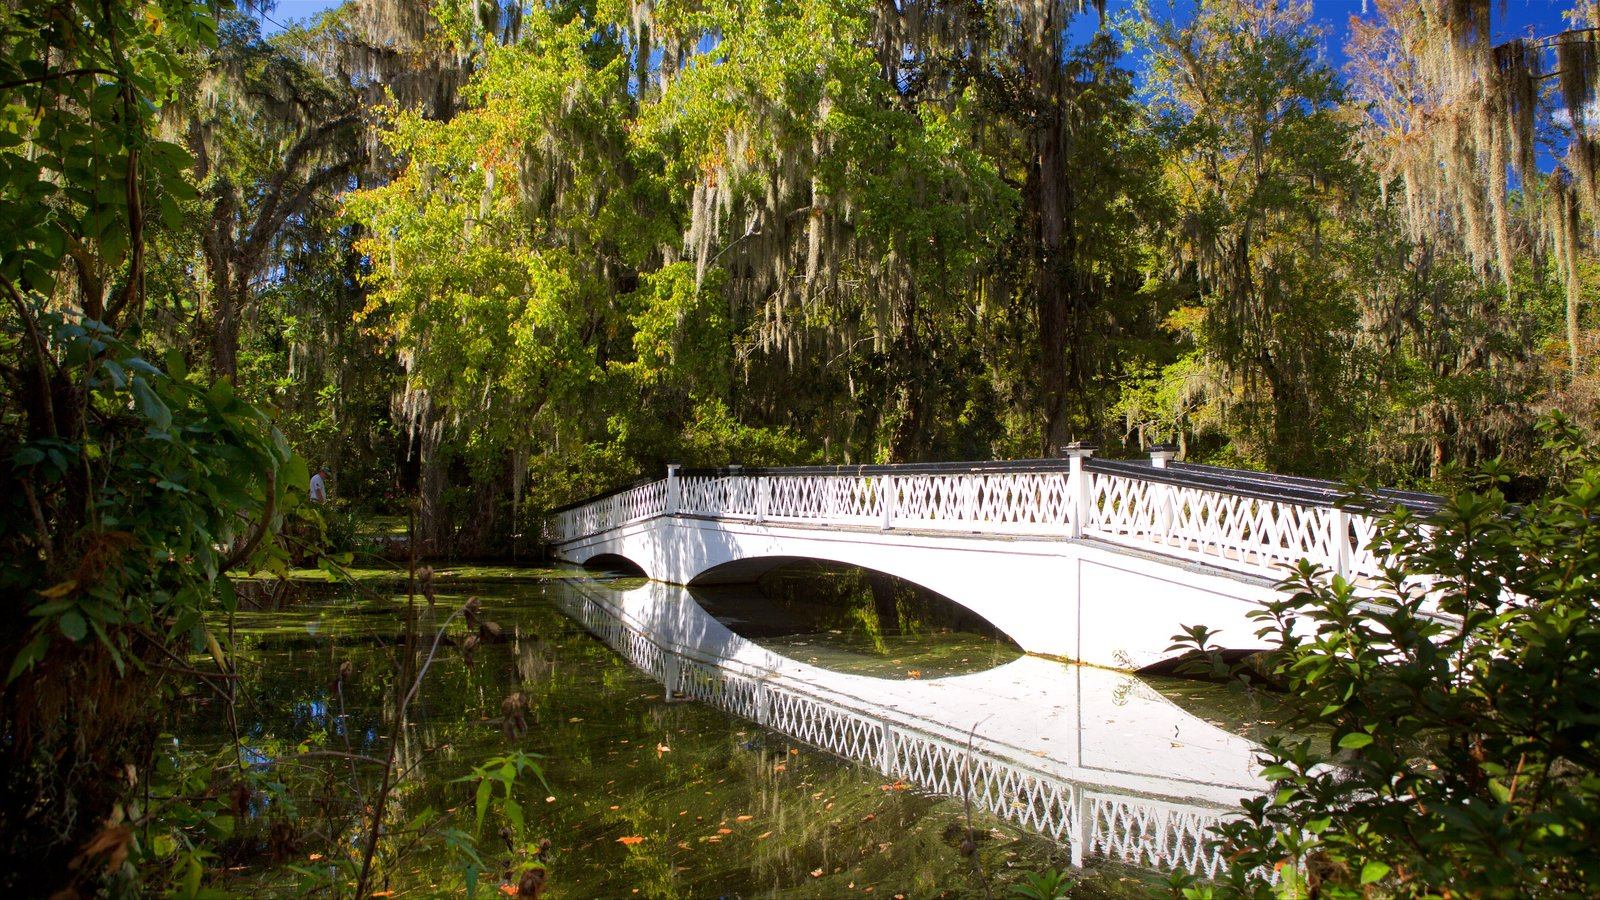 Gardens & Parks Pictures: View Images of Magnolia Plantation and Gardens